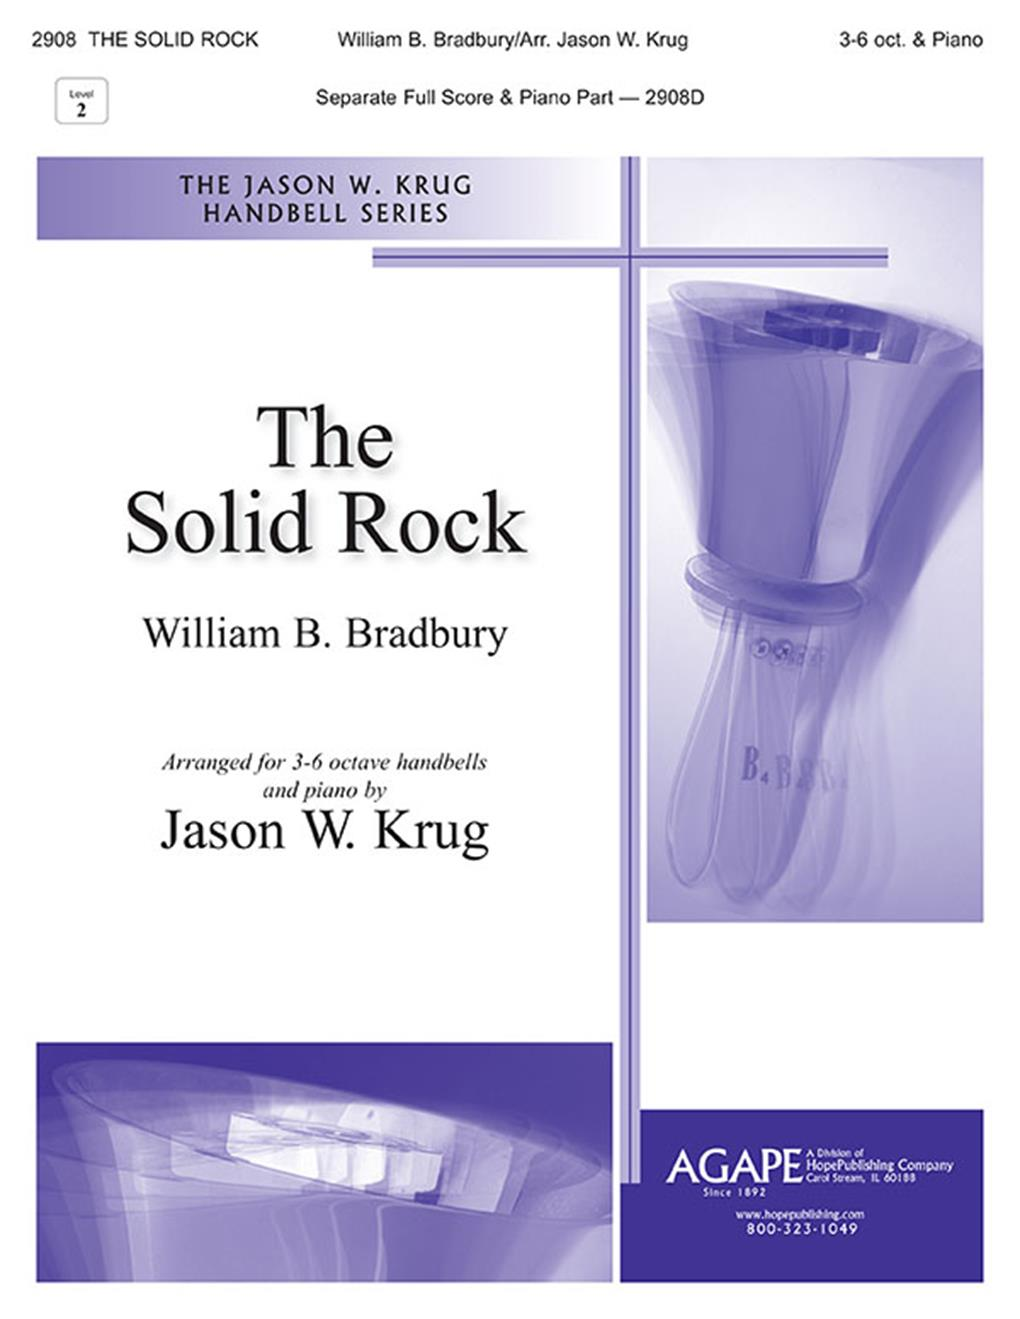 Solid Rock - 3-6 Oct. Cover Image